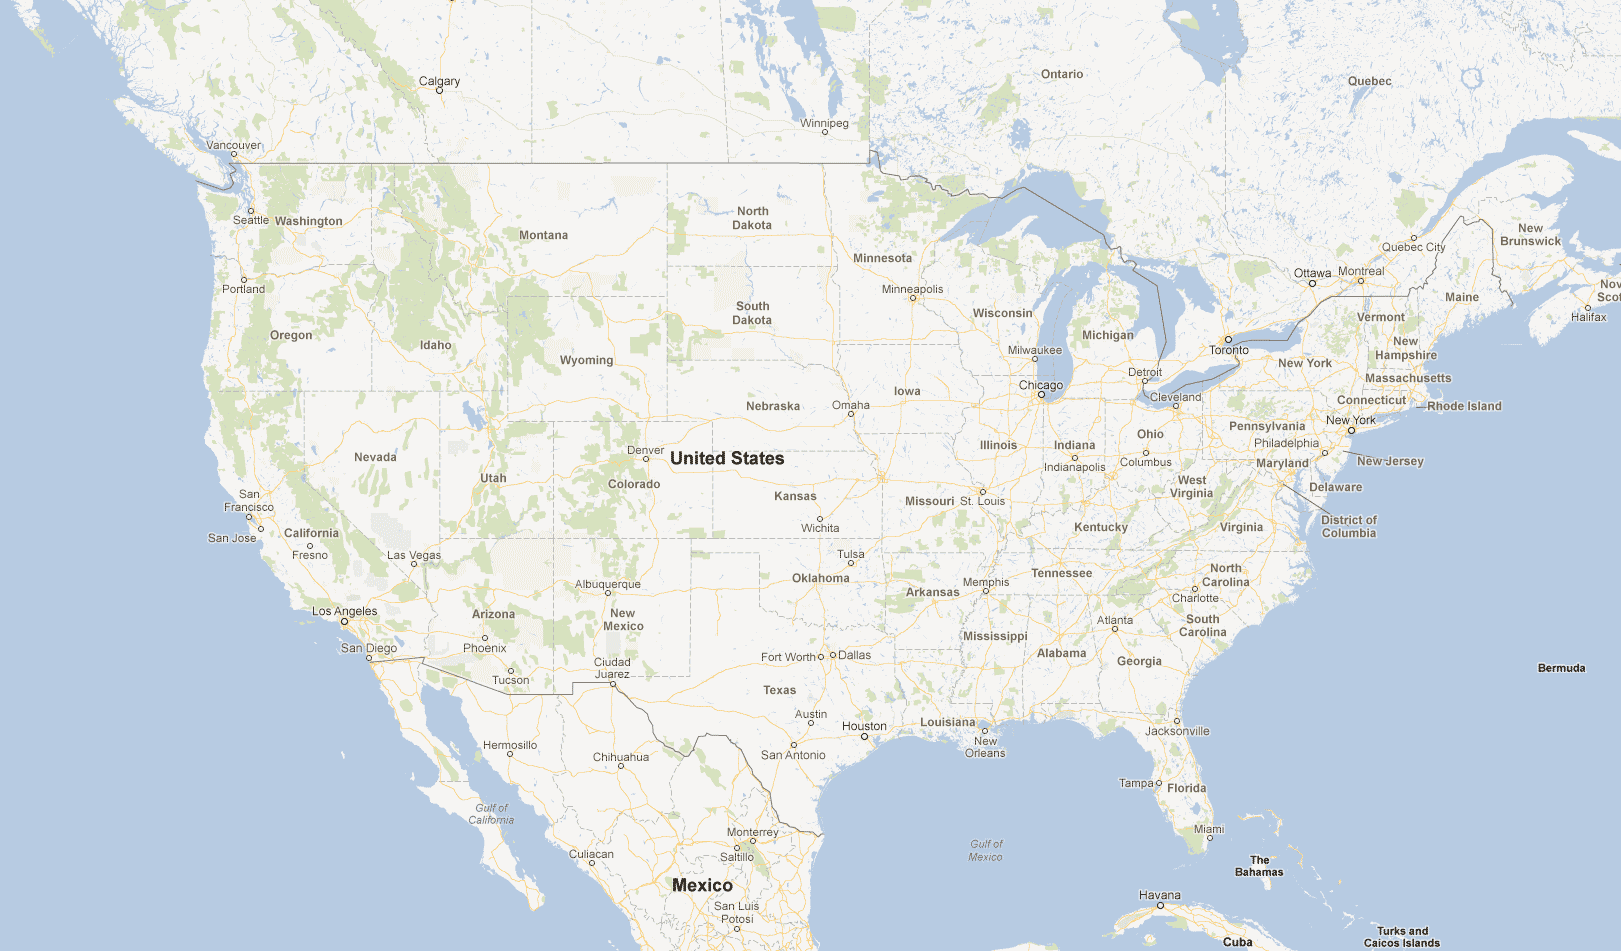 Google Map Of United States Google Map Of The United States | Google USA English United States